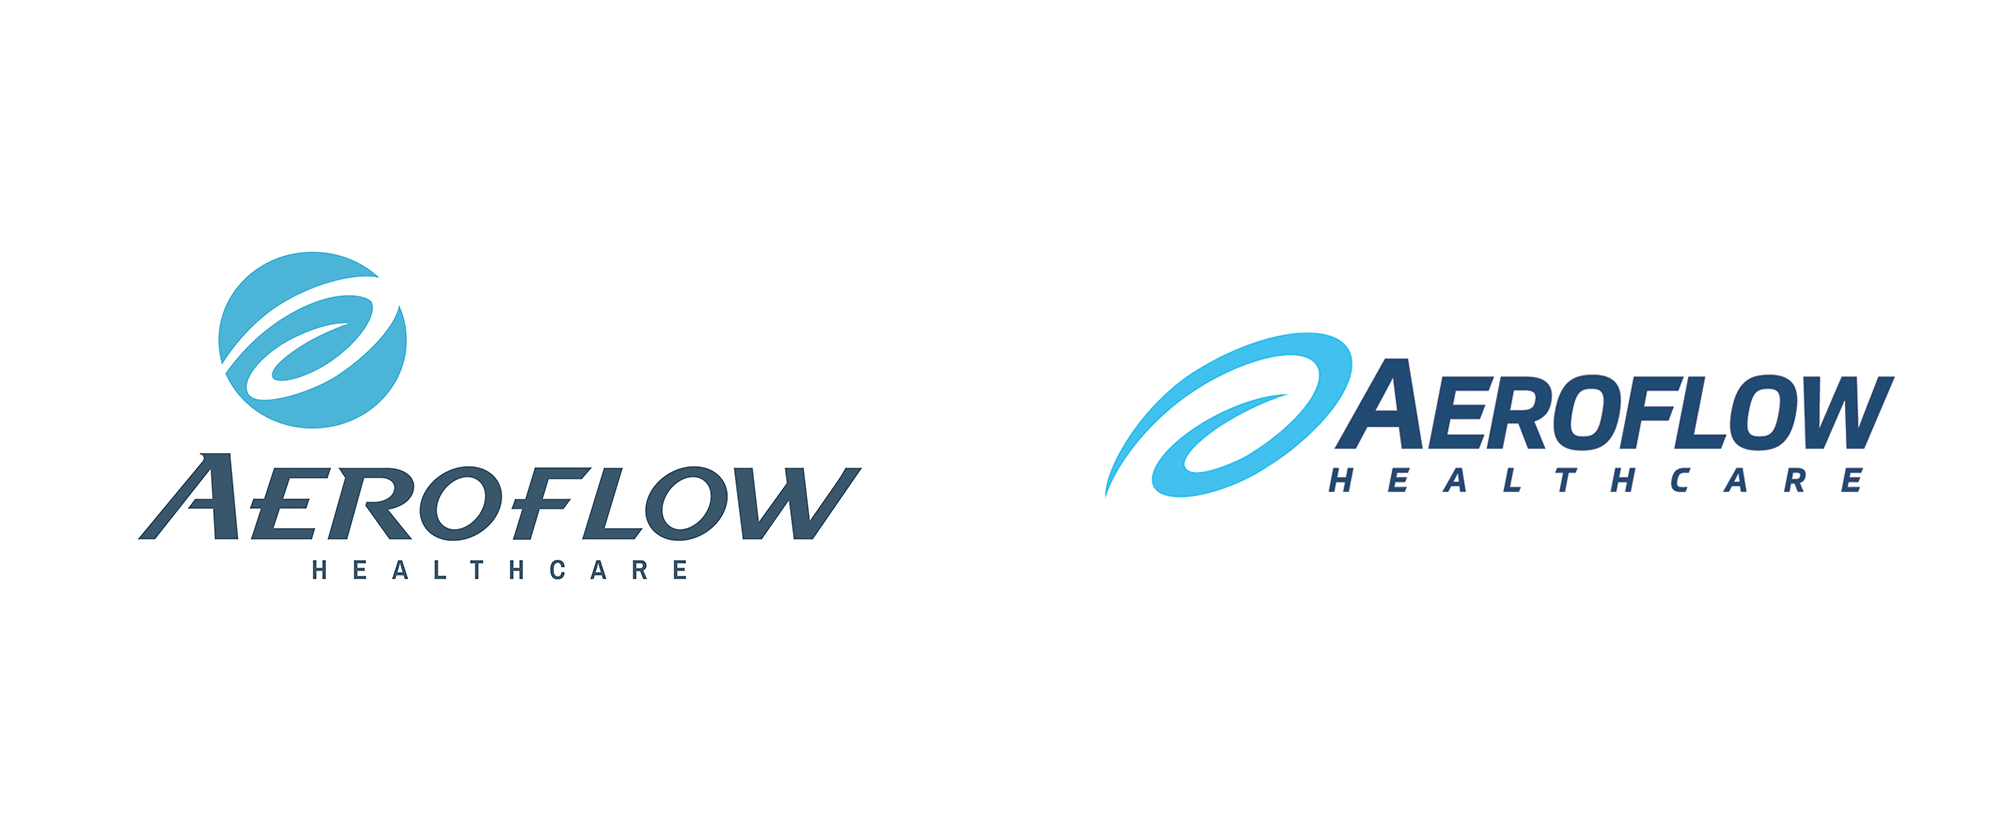 New Logo for Aeroflow Healthcare by Percepted